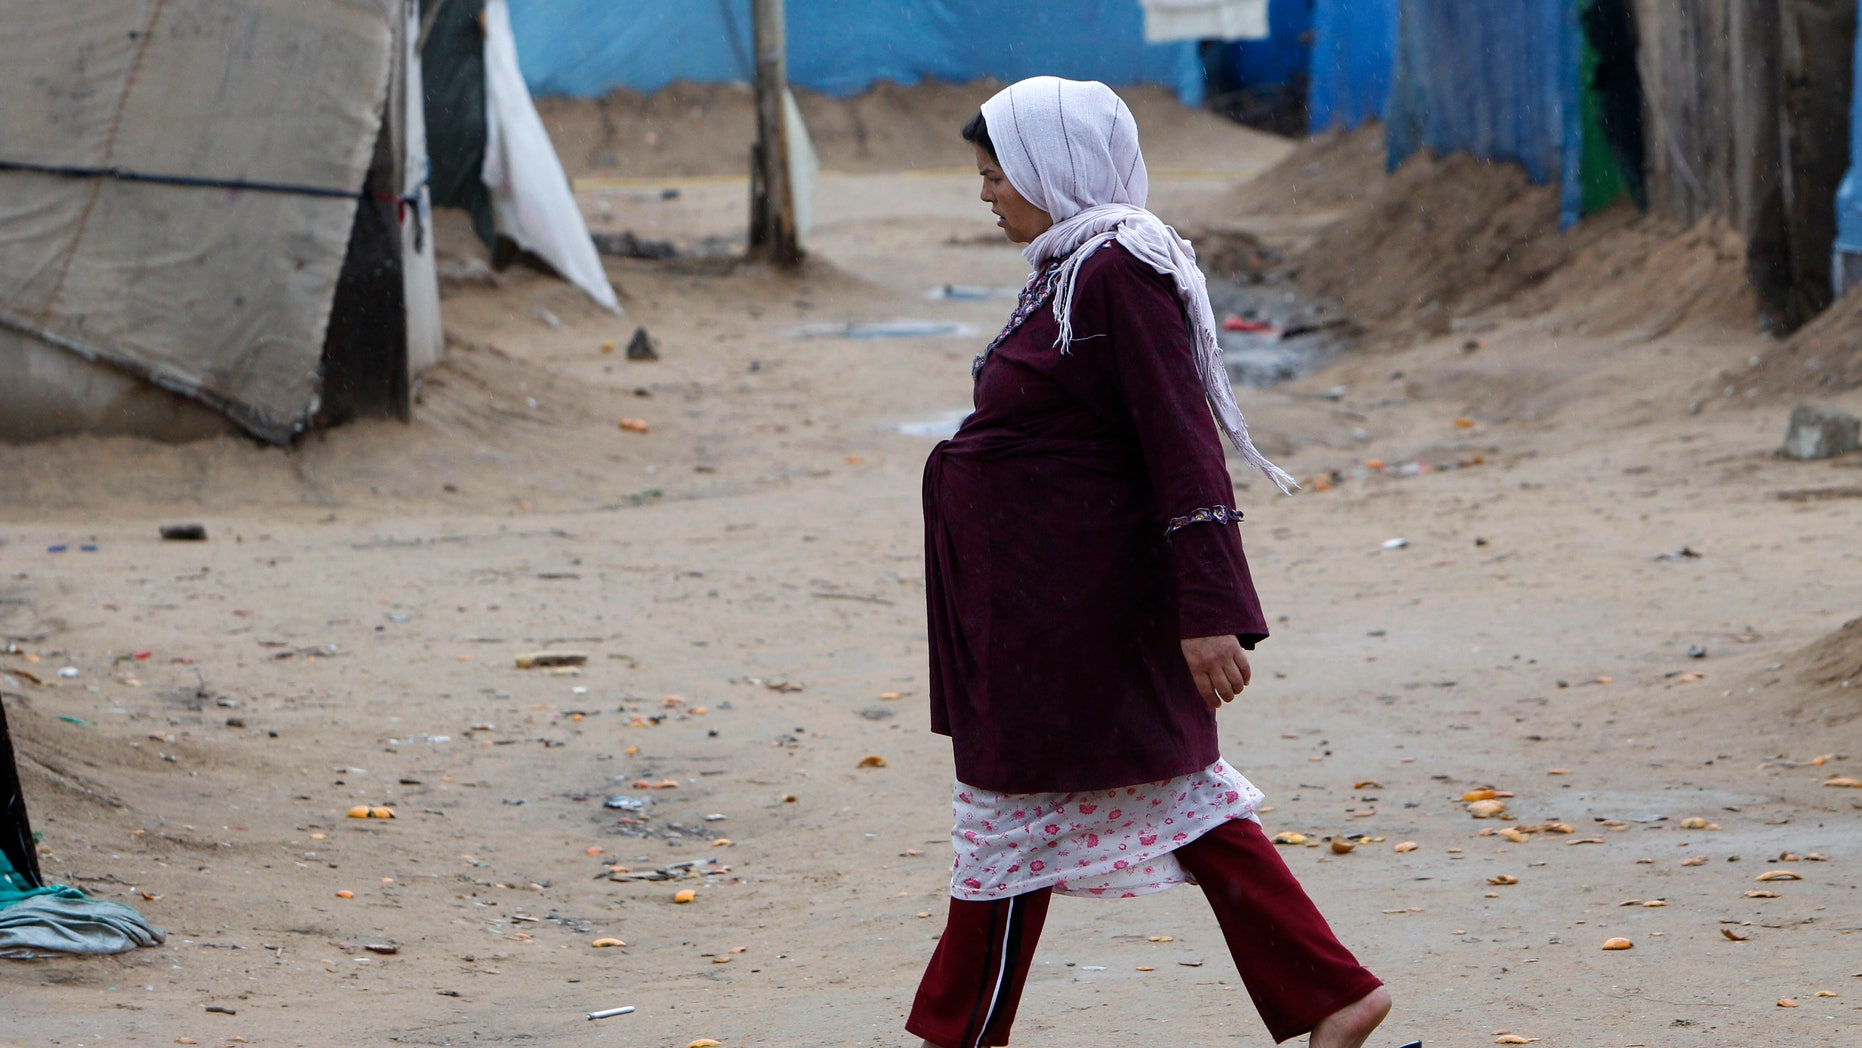 A pregnant Syrian woman walks at a refugee camp in the city of Tyre, in southern Lebanon January 31, 2013. REUTERS/Ali Hashisho